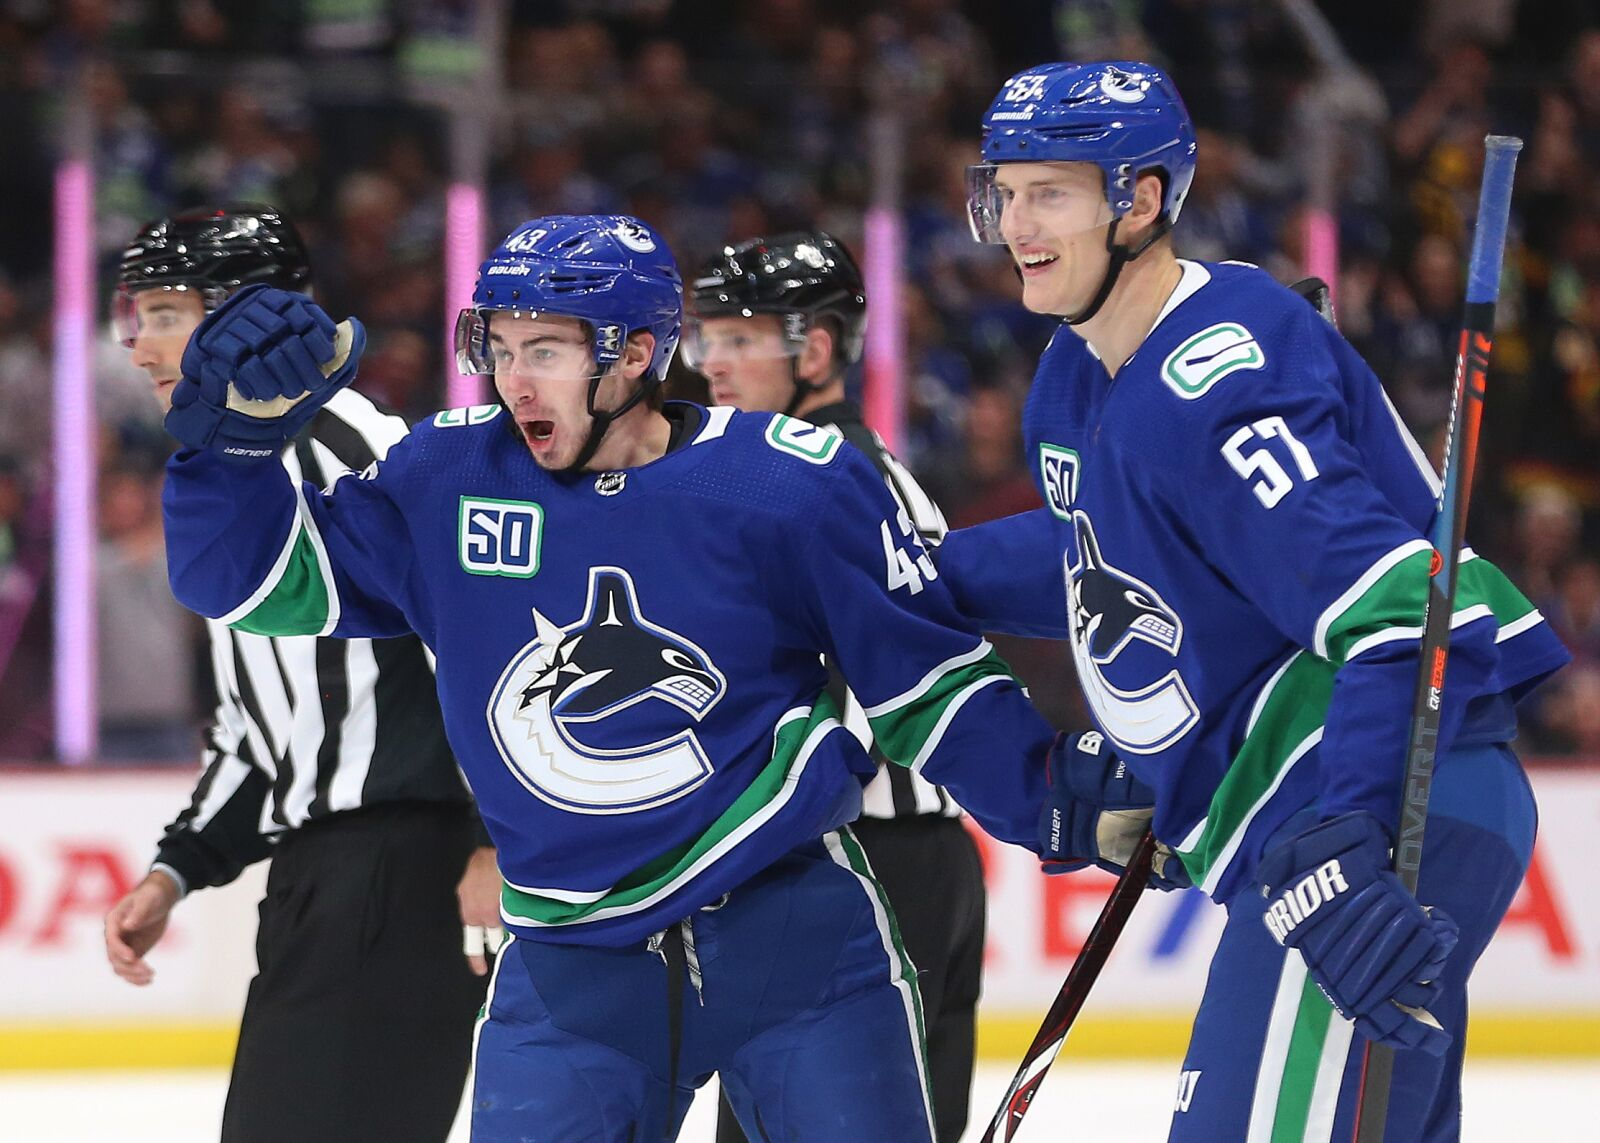 Vancouver Canucks: The defence already looks much better